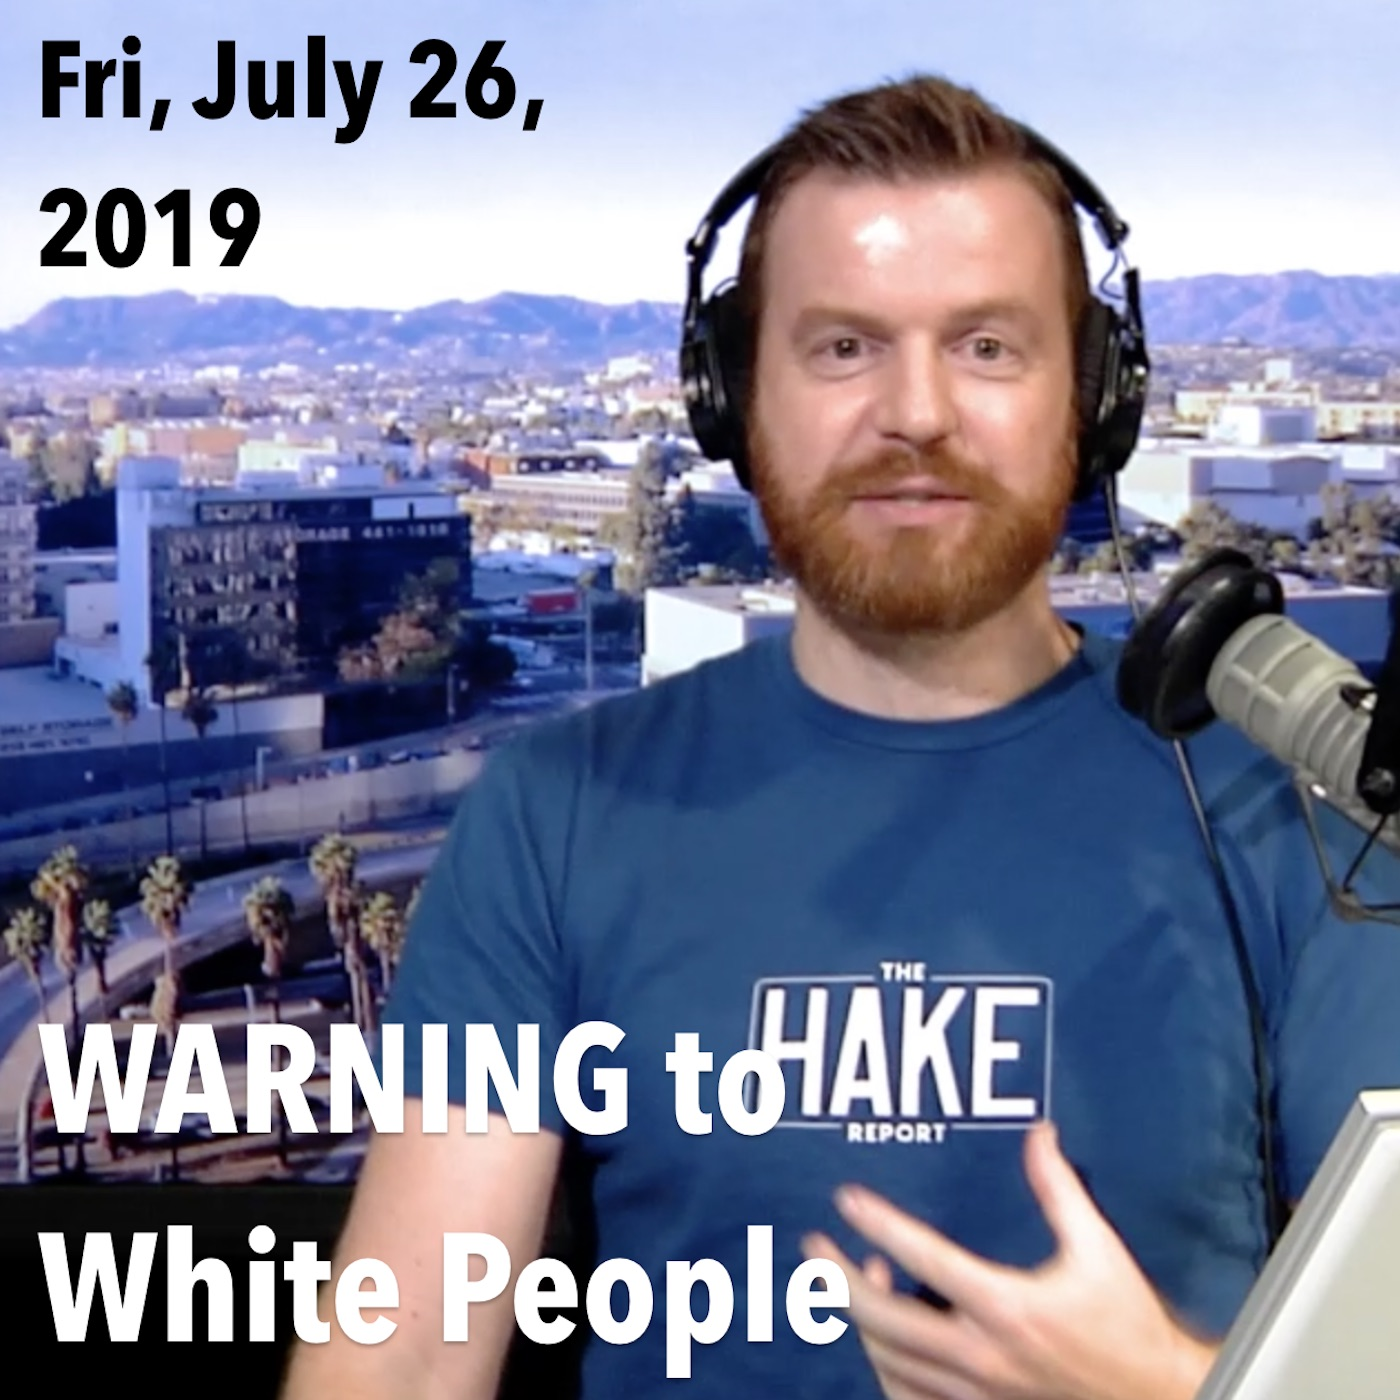 Square thumbnail from James's show today, Friday, July 26, 2019: Warning to White People.